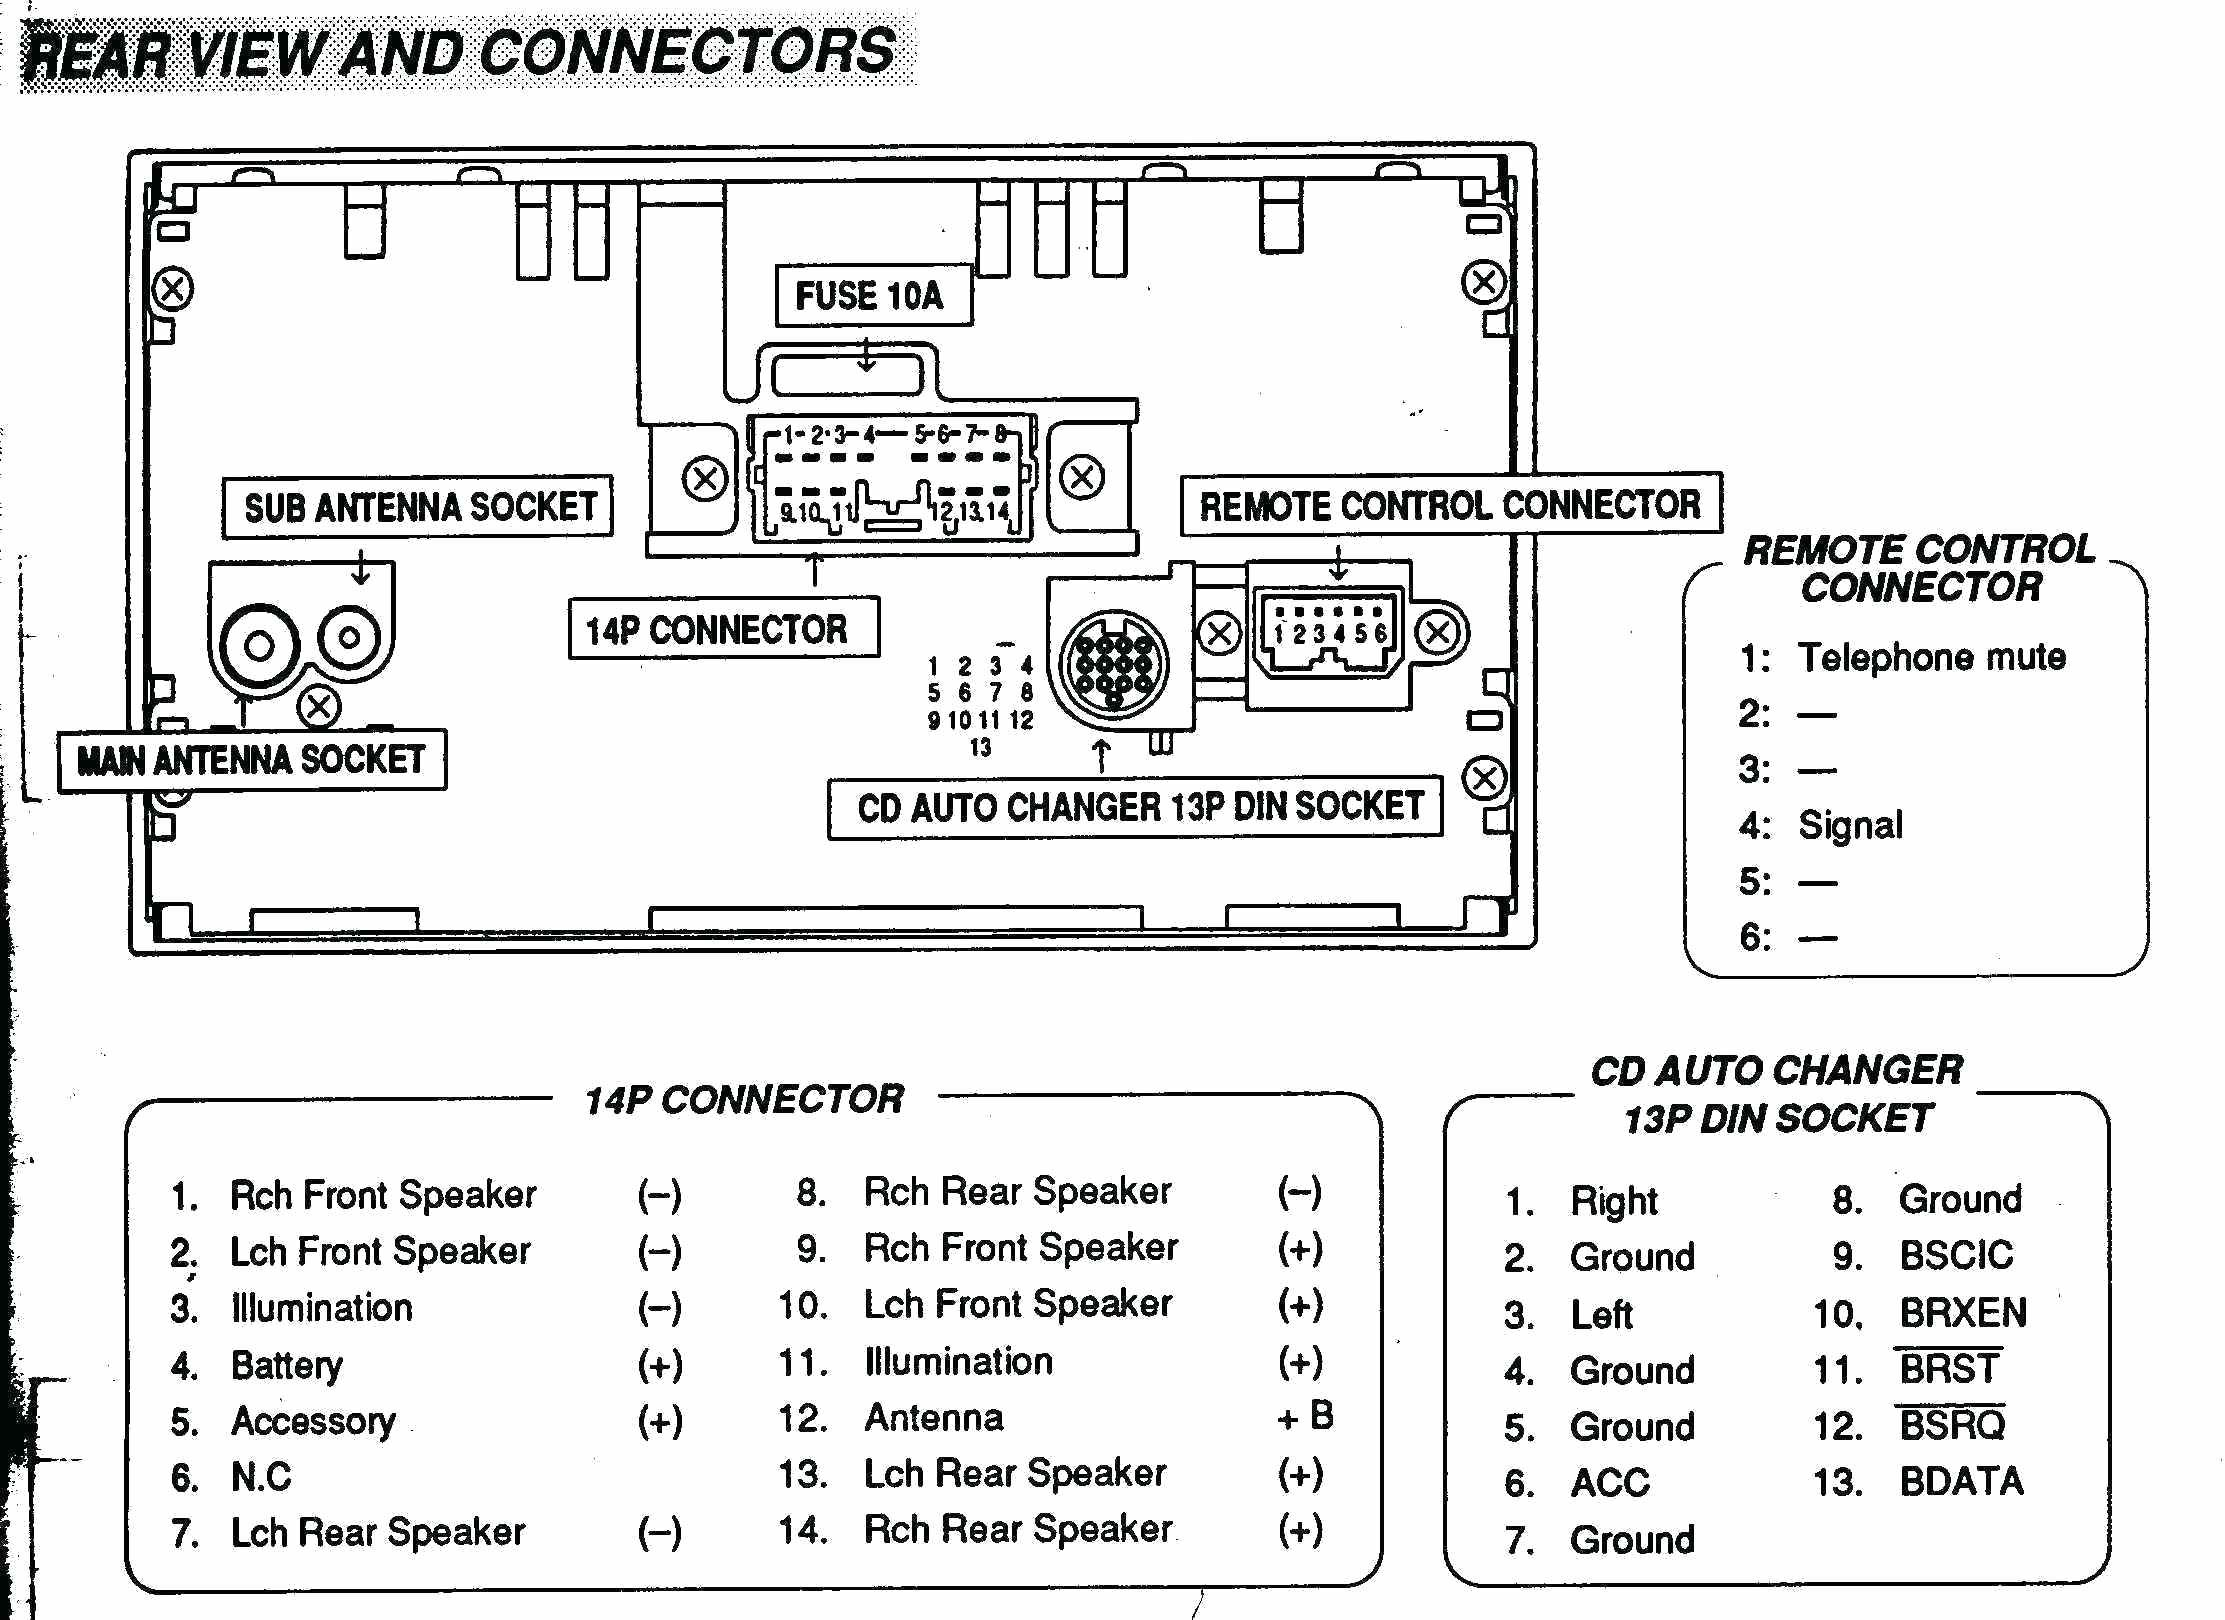 Scion Xa Engine Diagram 2006 Scion Xa Fuse Diagram Stereo Wiring ford  Escape Hybrid Box News